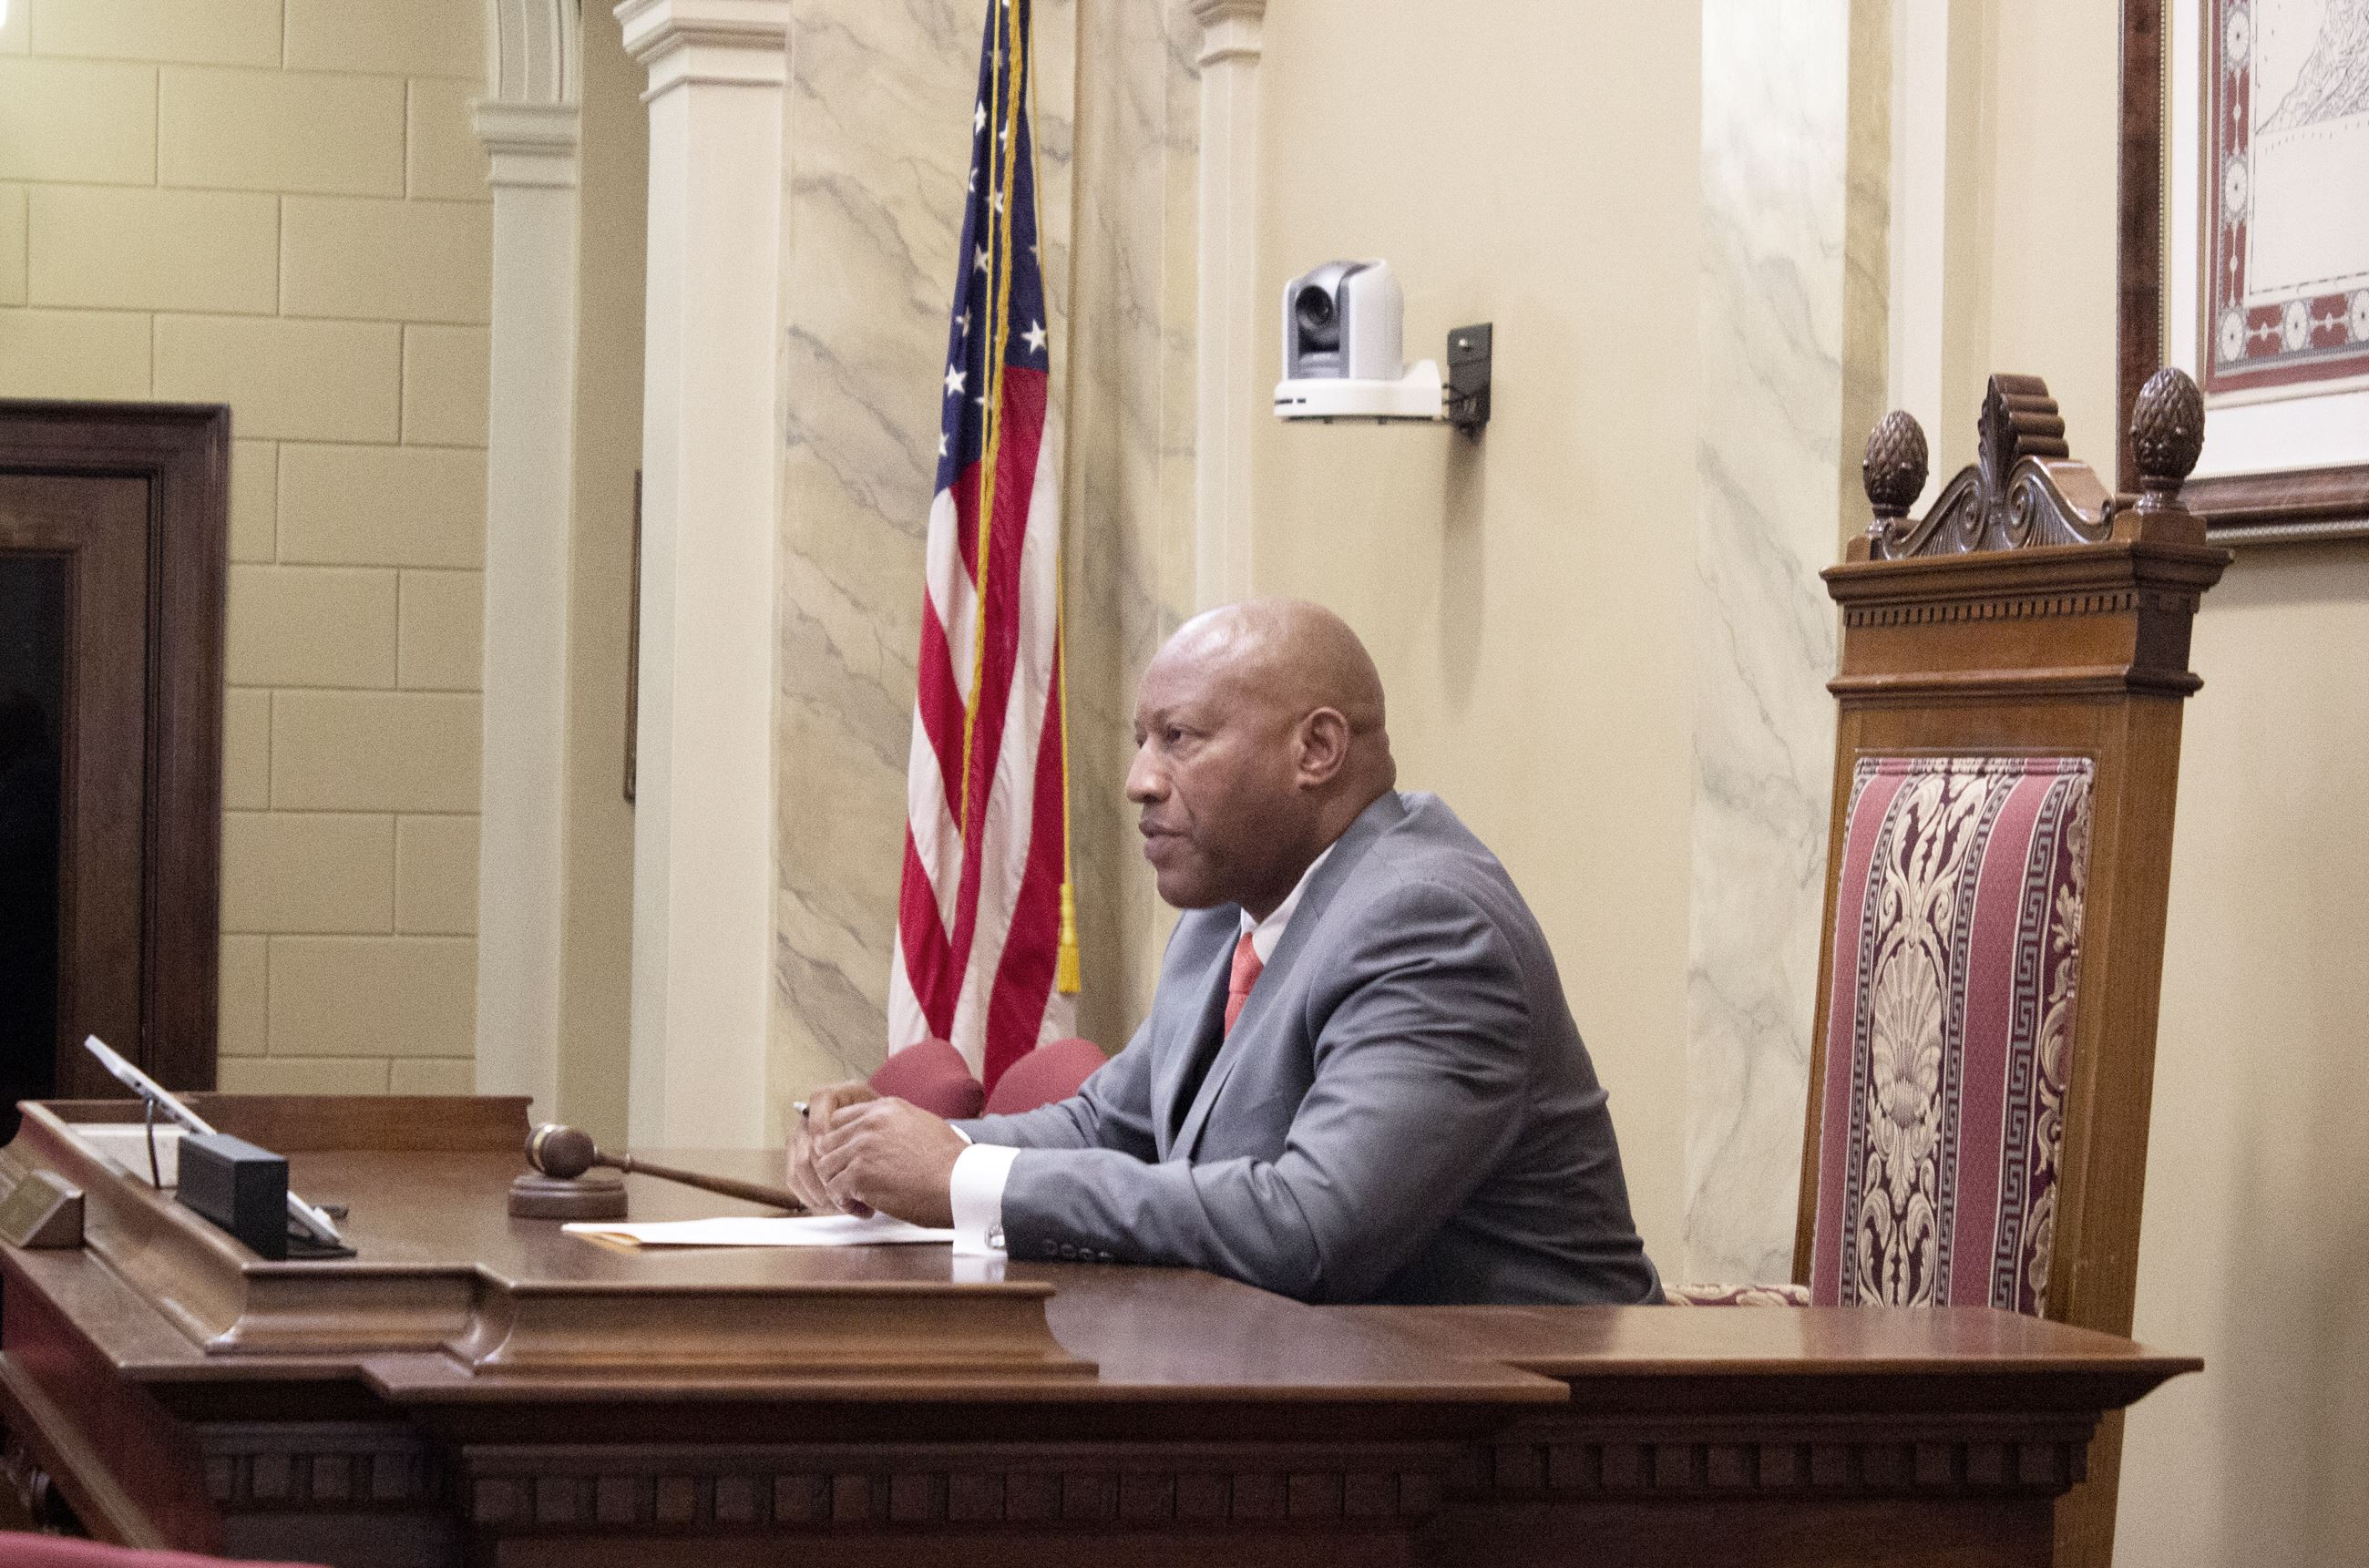 Mayor Jones presides at inaugural meeting